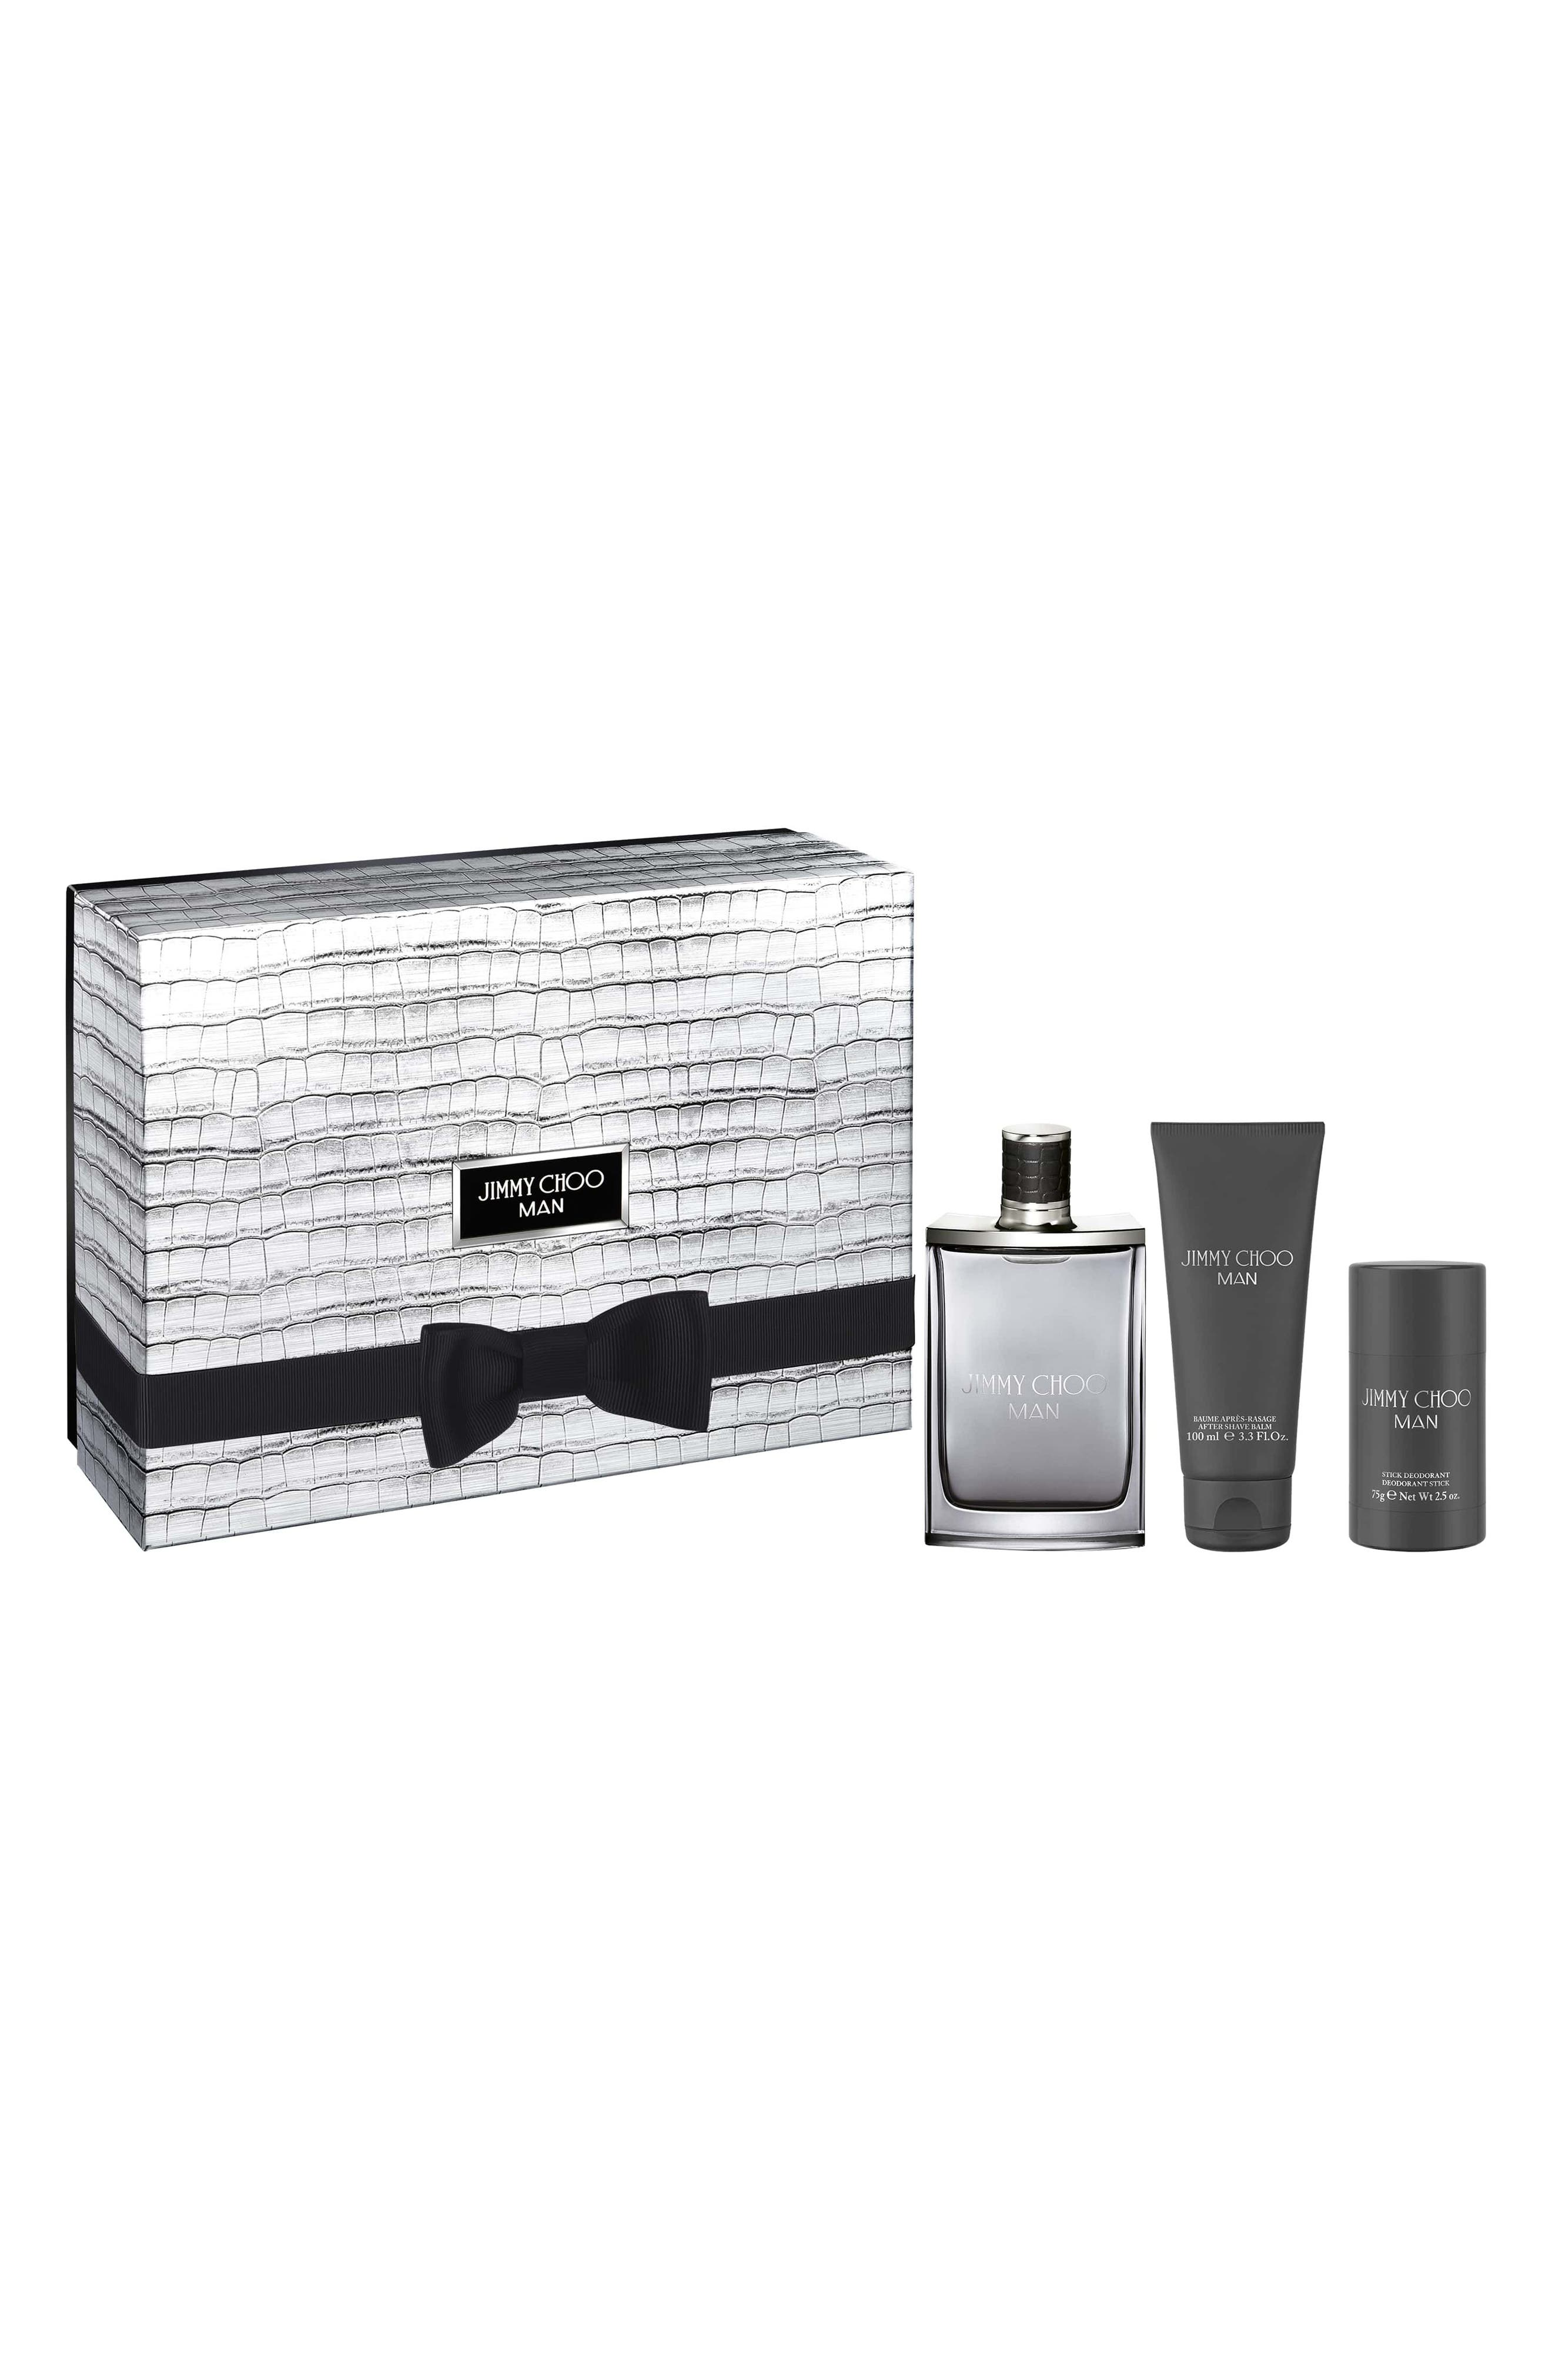 Jimmy Choo MAN Eau de Toilette Set ($145 Value)